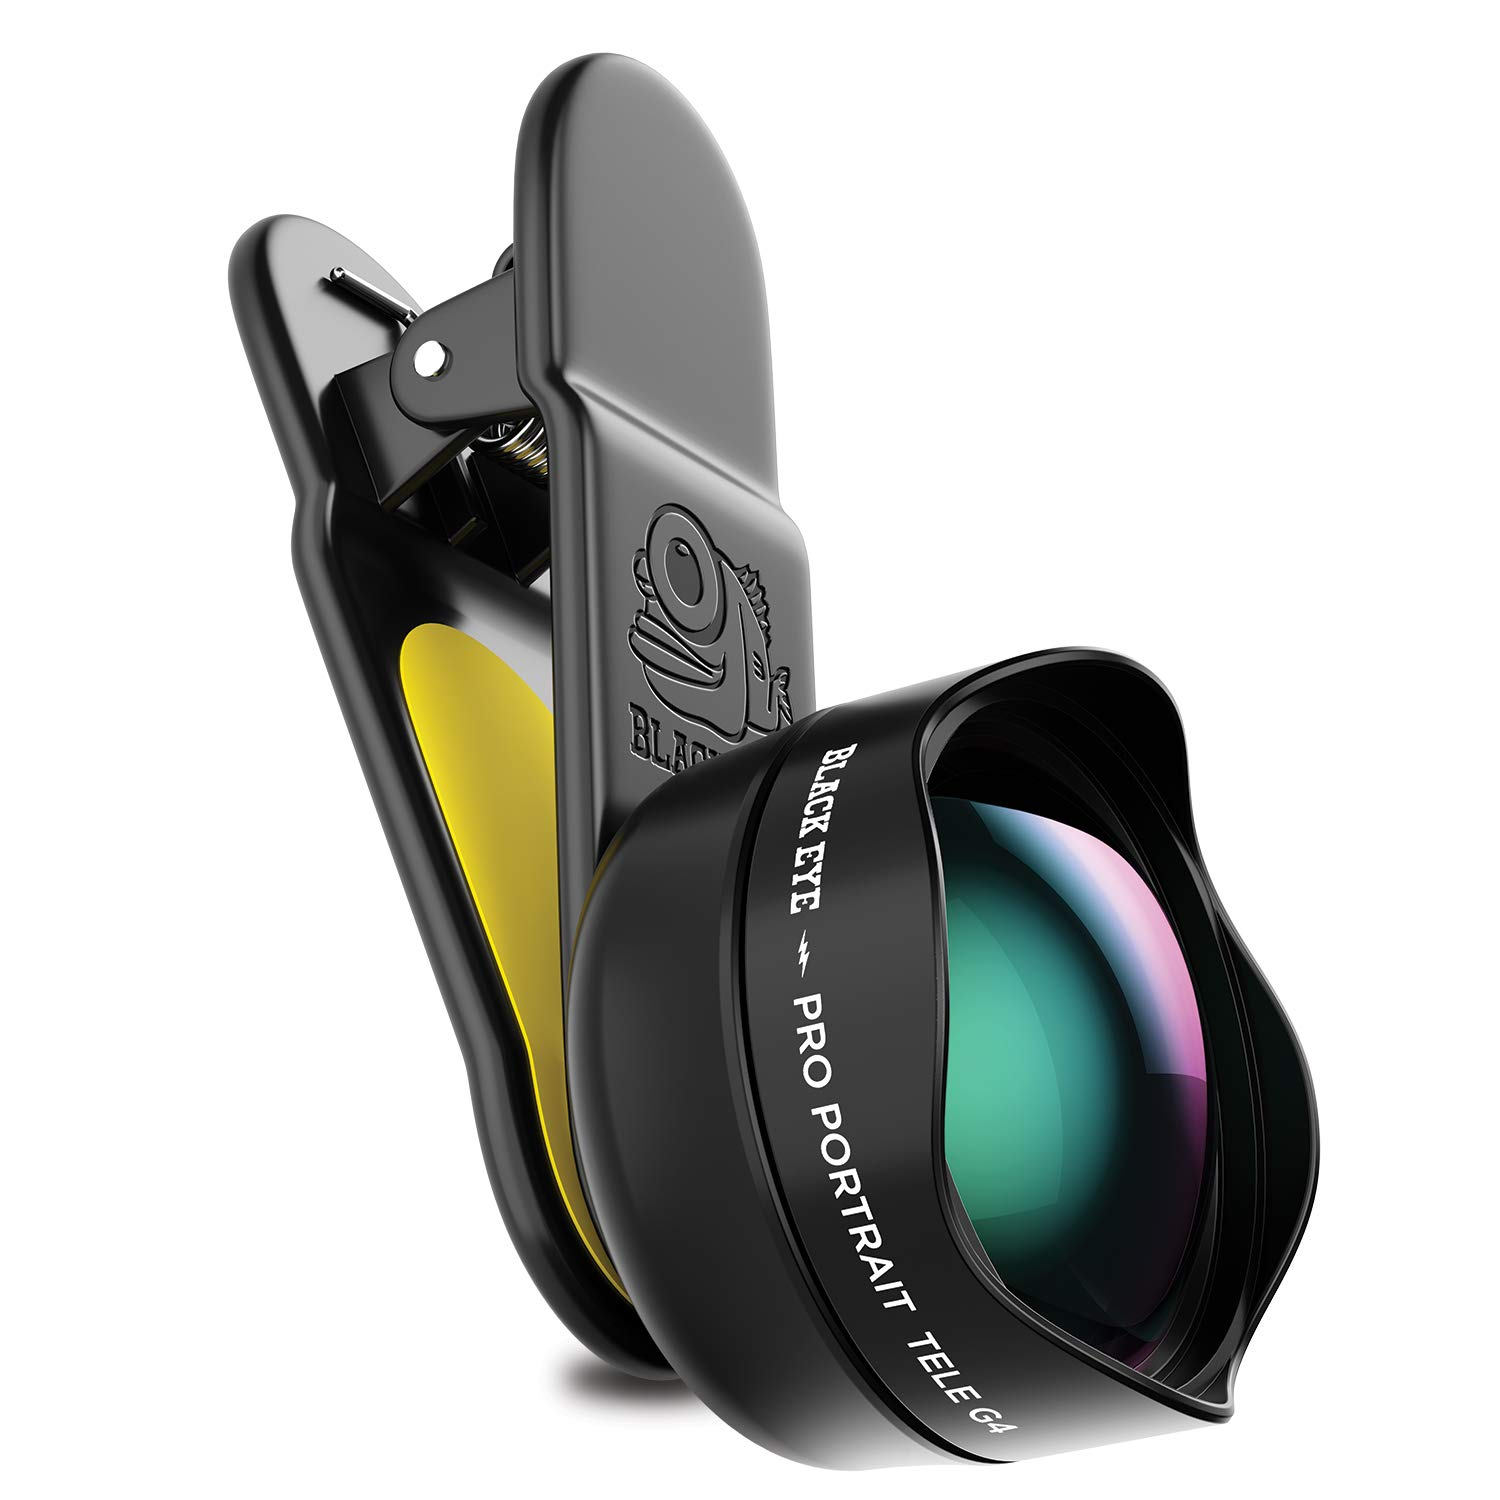 Phone Lenses by Black Eye || Pro Portrait Tele Photo G4 Clip-on Zoom Lens Compatible with iPhone, iPad, Samsung Galaxy, and All Camera Phone Models